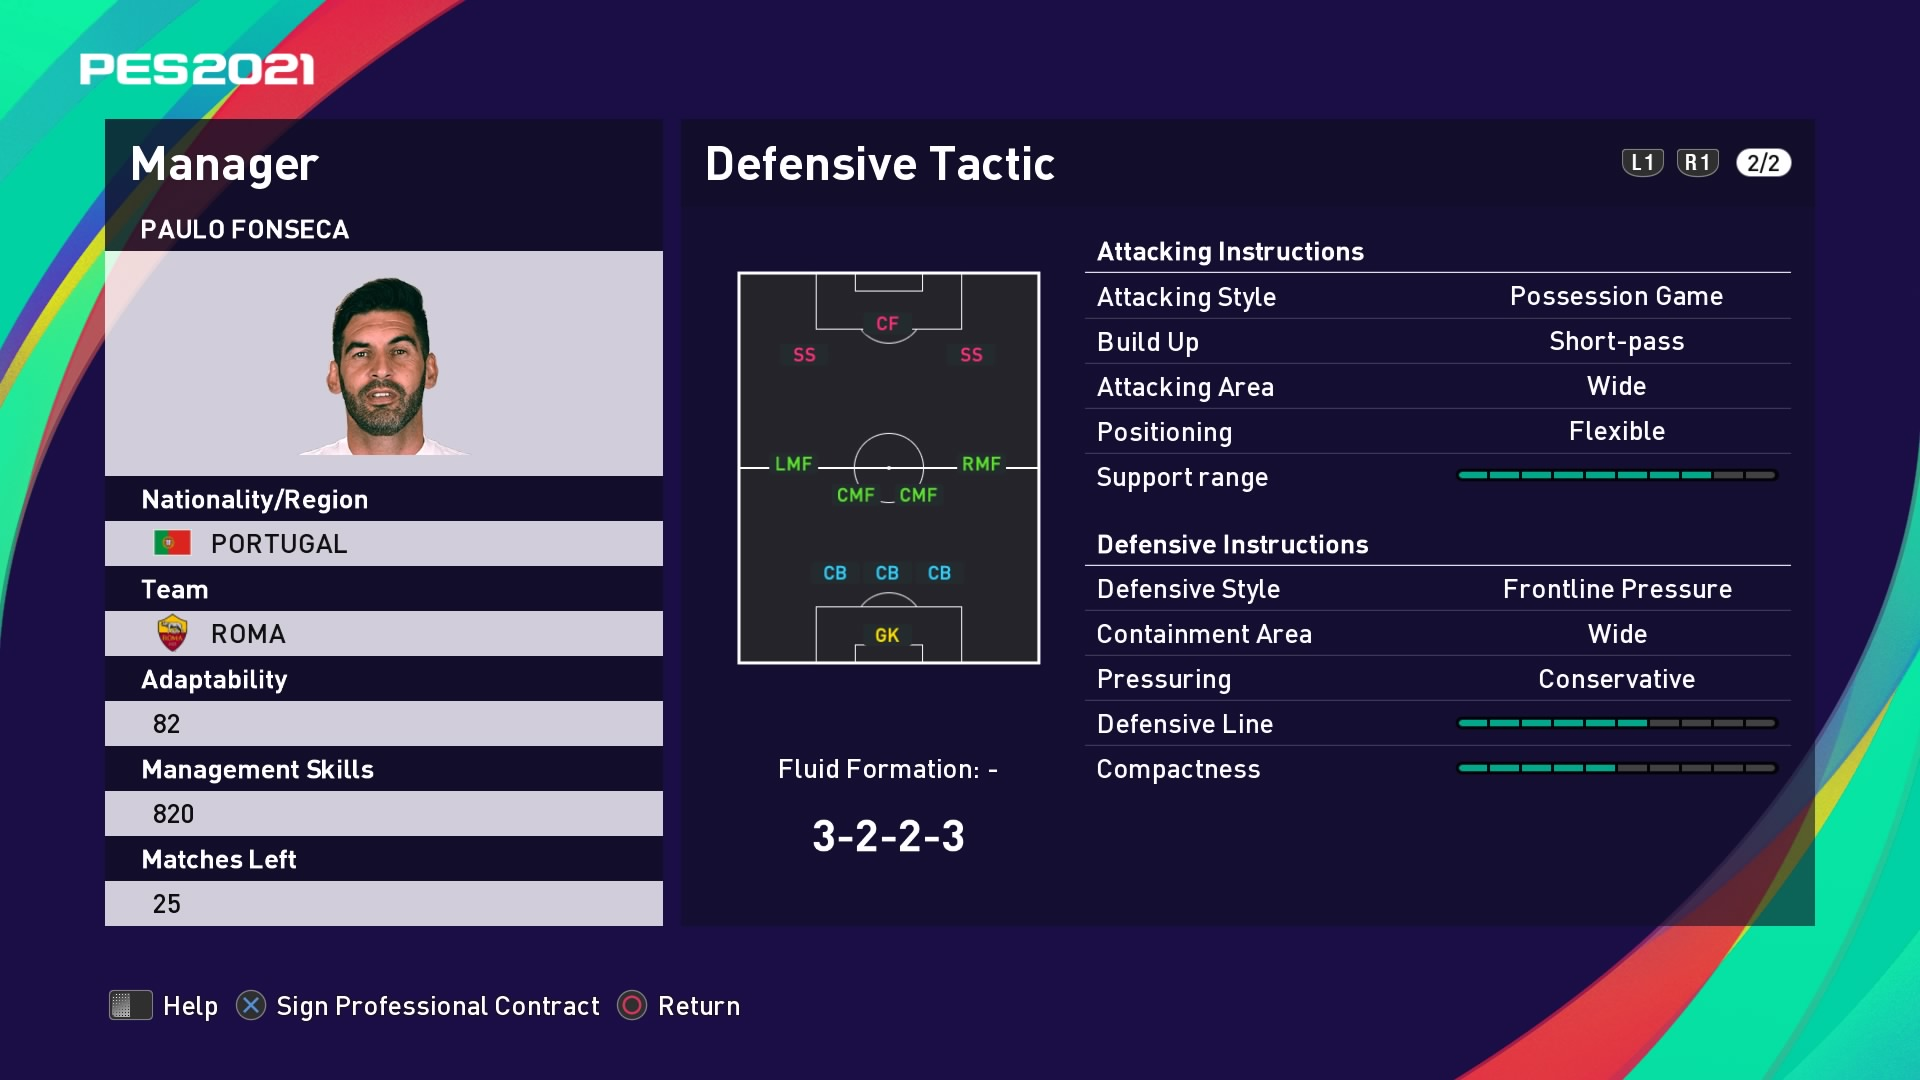 Paulo Fonseca Defensive Tactic in PES 2021 myClub